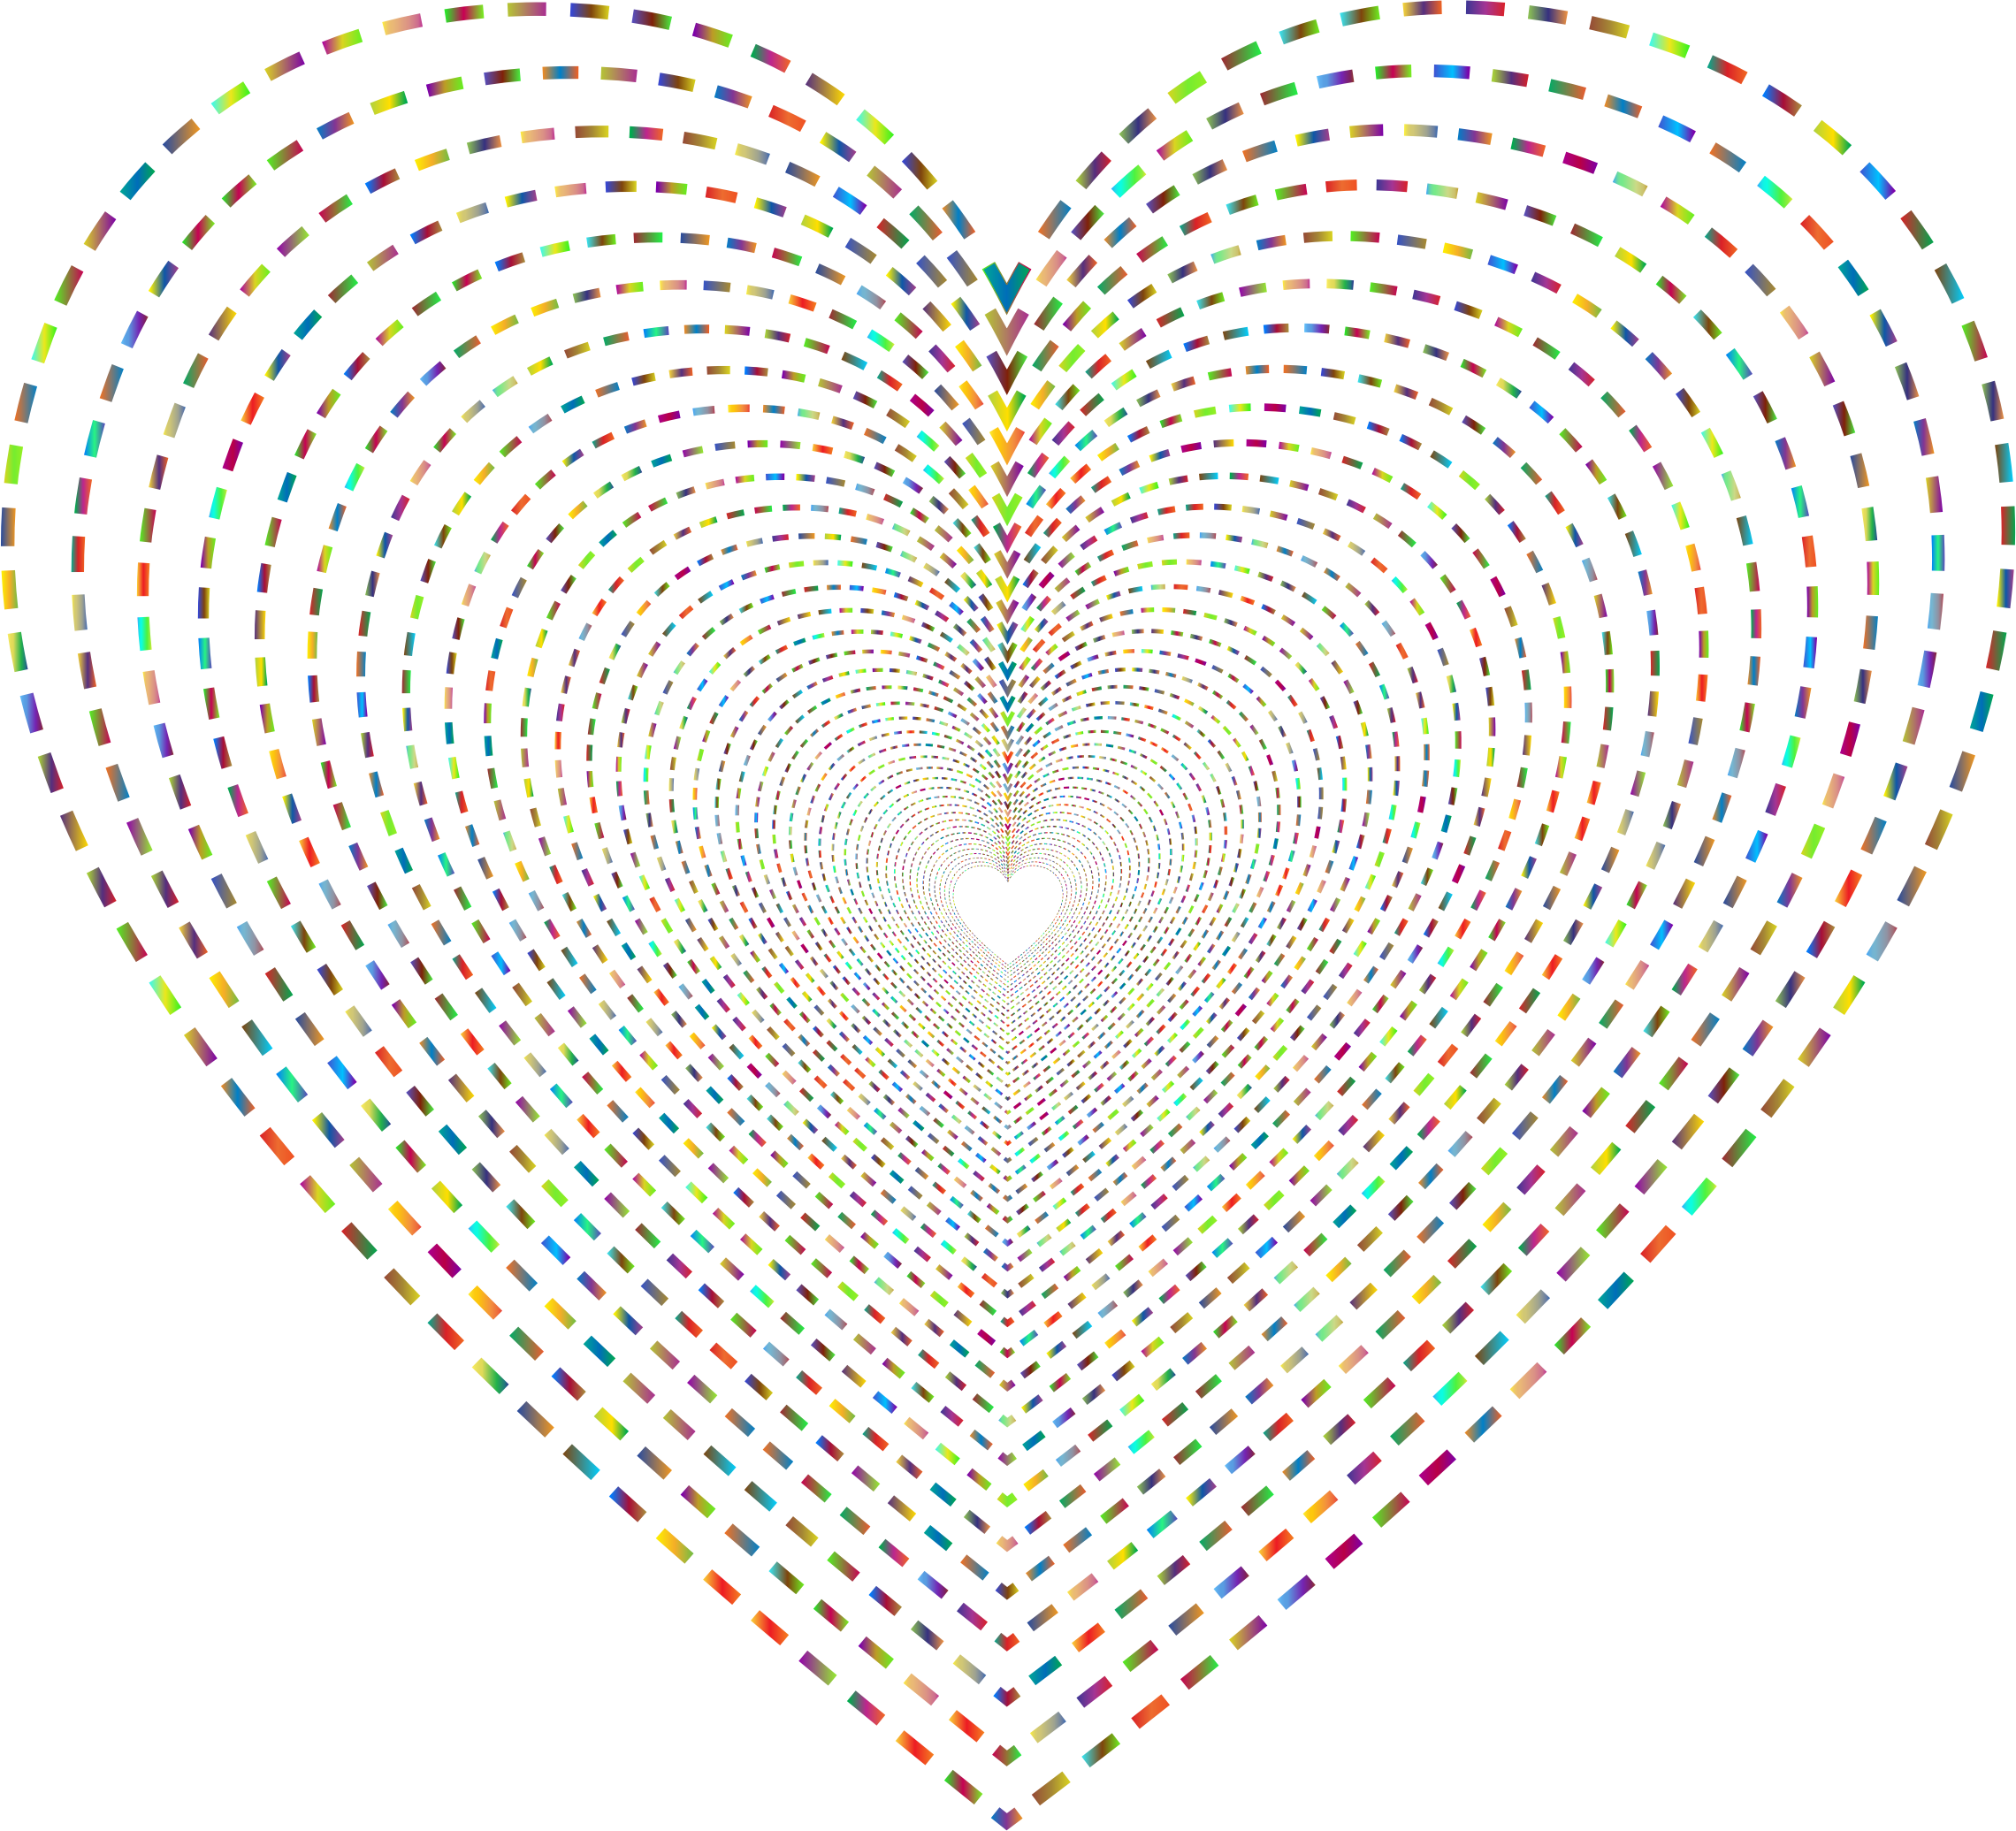 Dashed Line Art Heart Tunnel 2 No Background by GDJ